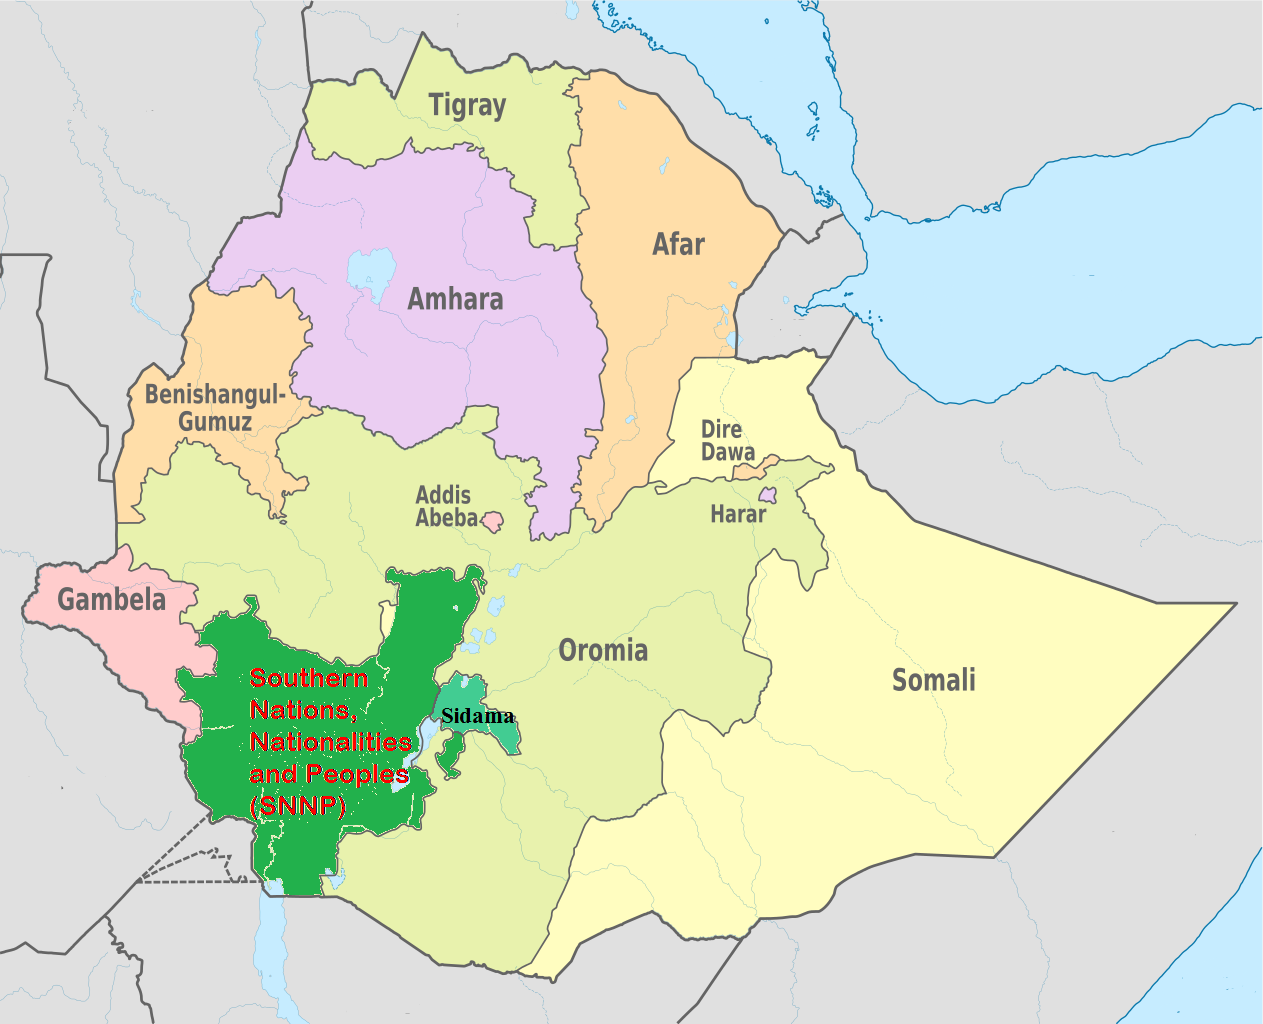 Southern nations nationalities and people snnpr ethiopia about southern nations nationalities and people snnpr region map gumiabroncs Choice Image